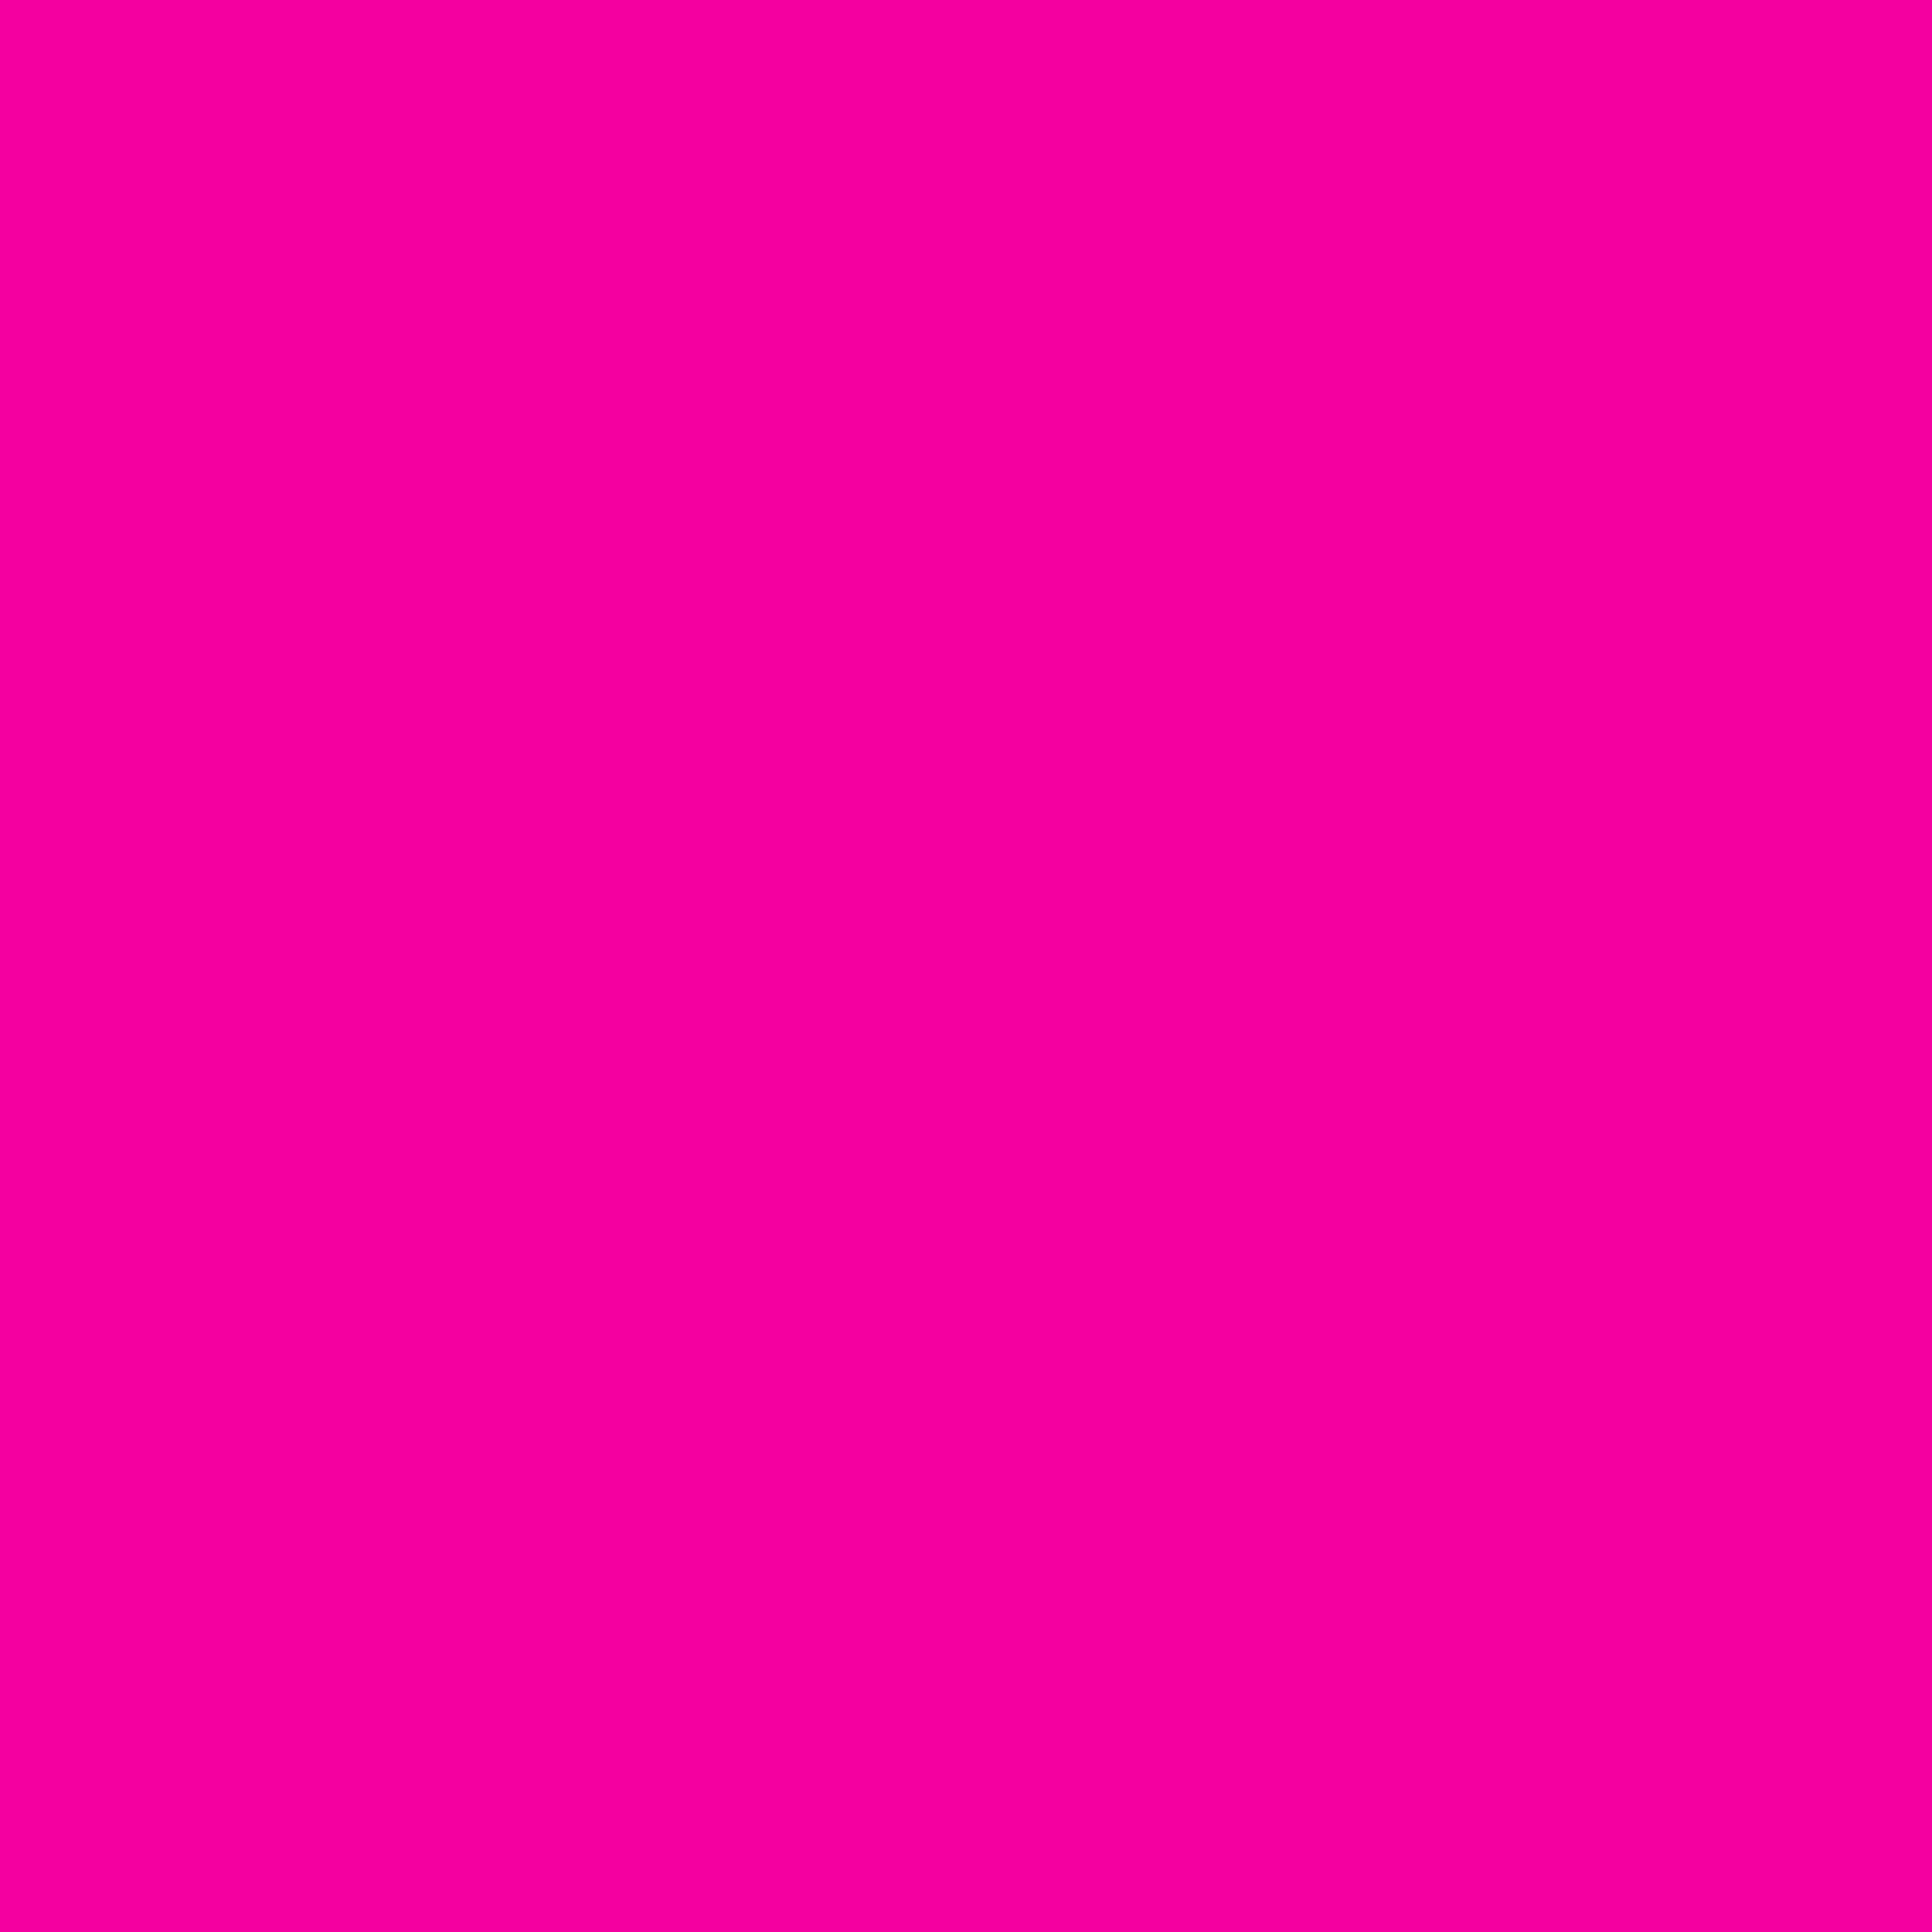 2732x2732 Fashion Fuchsia Solid Color Background